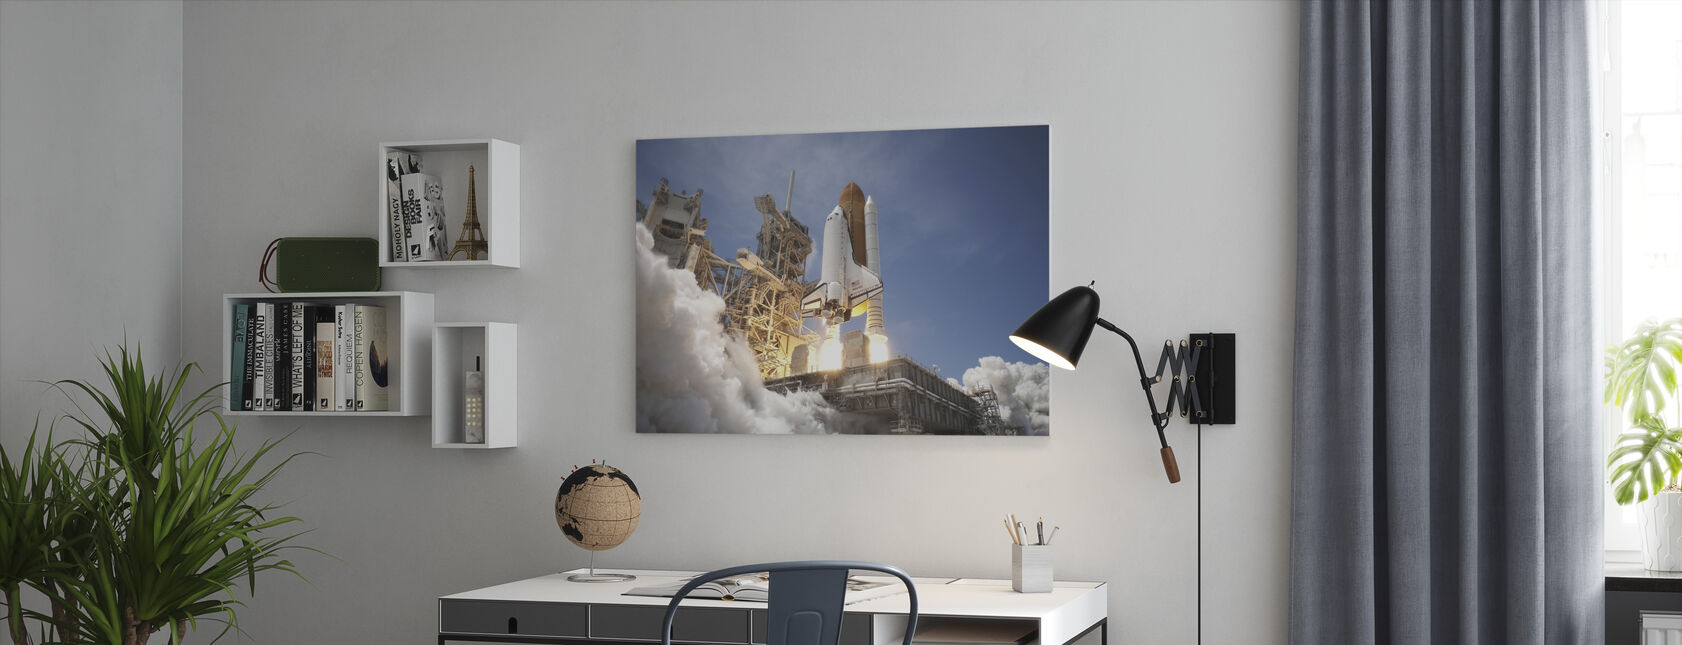 Space Shuttle - Canvas print - Office